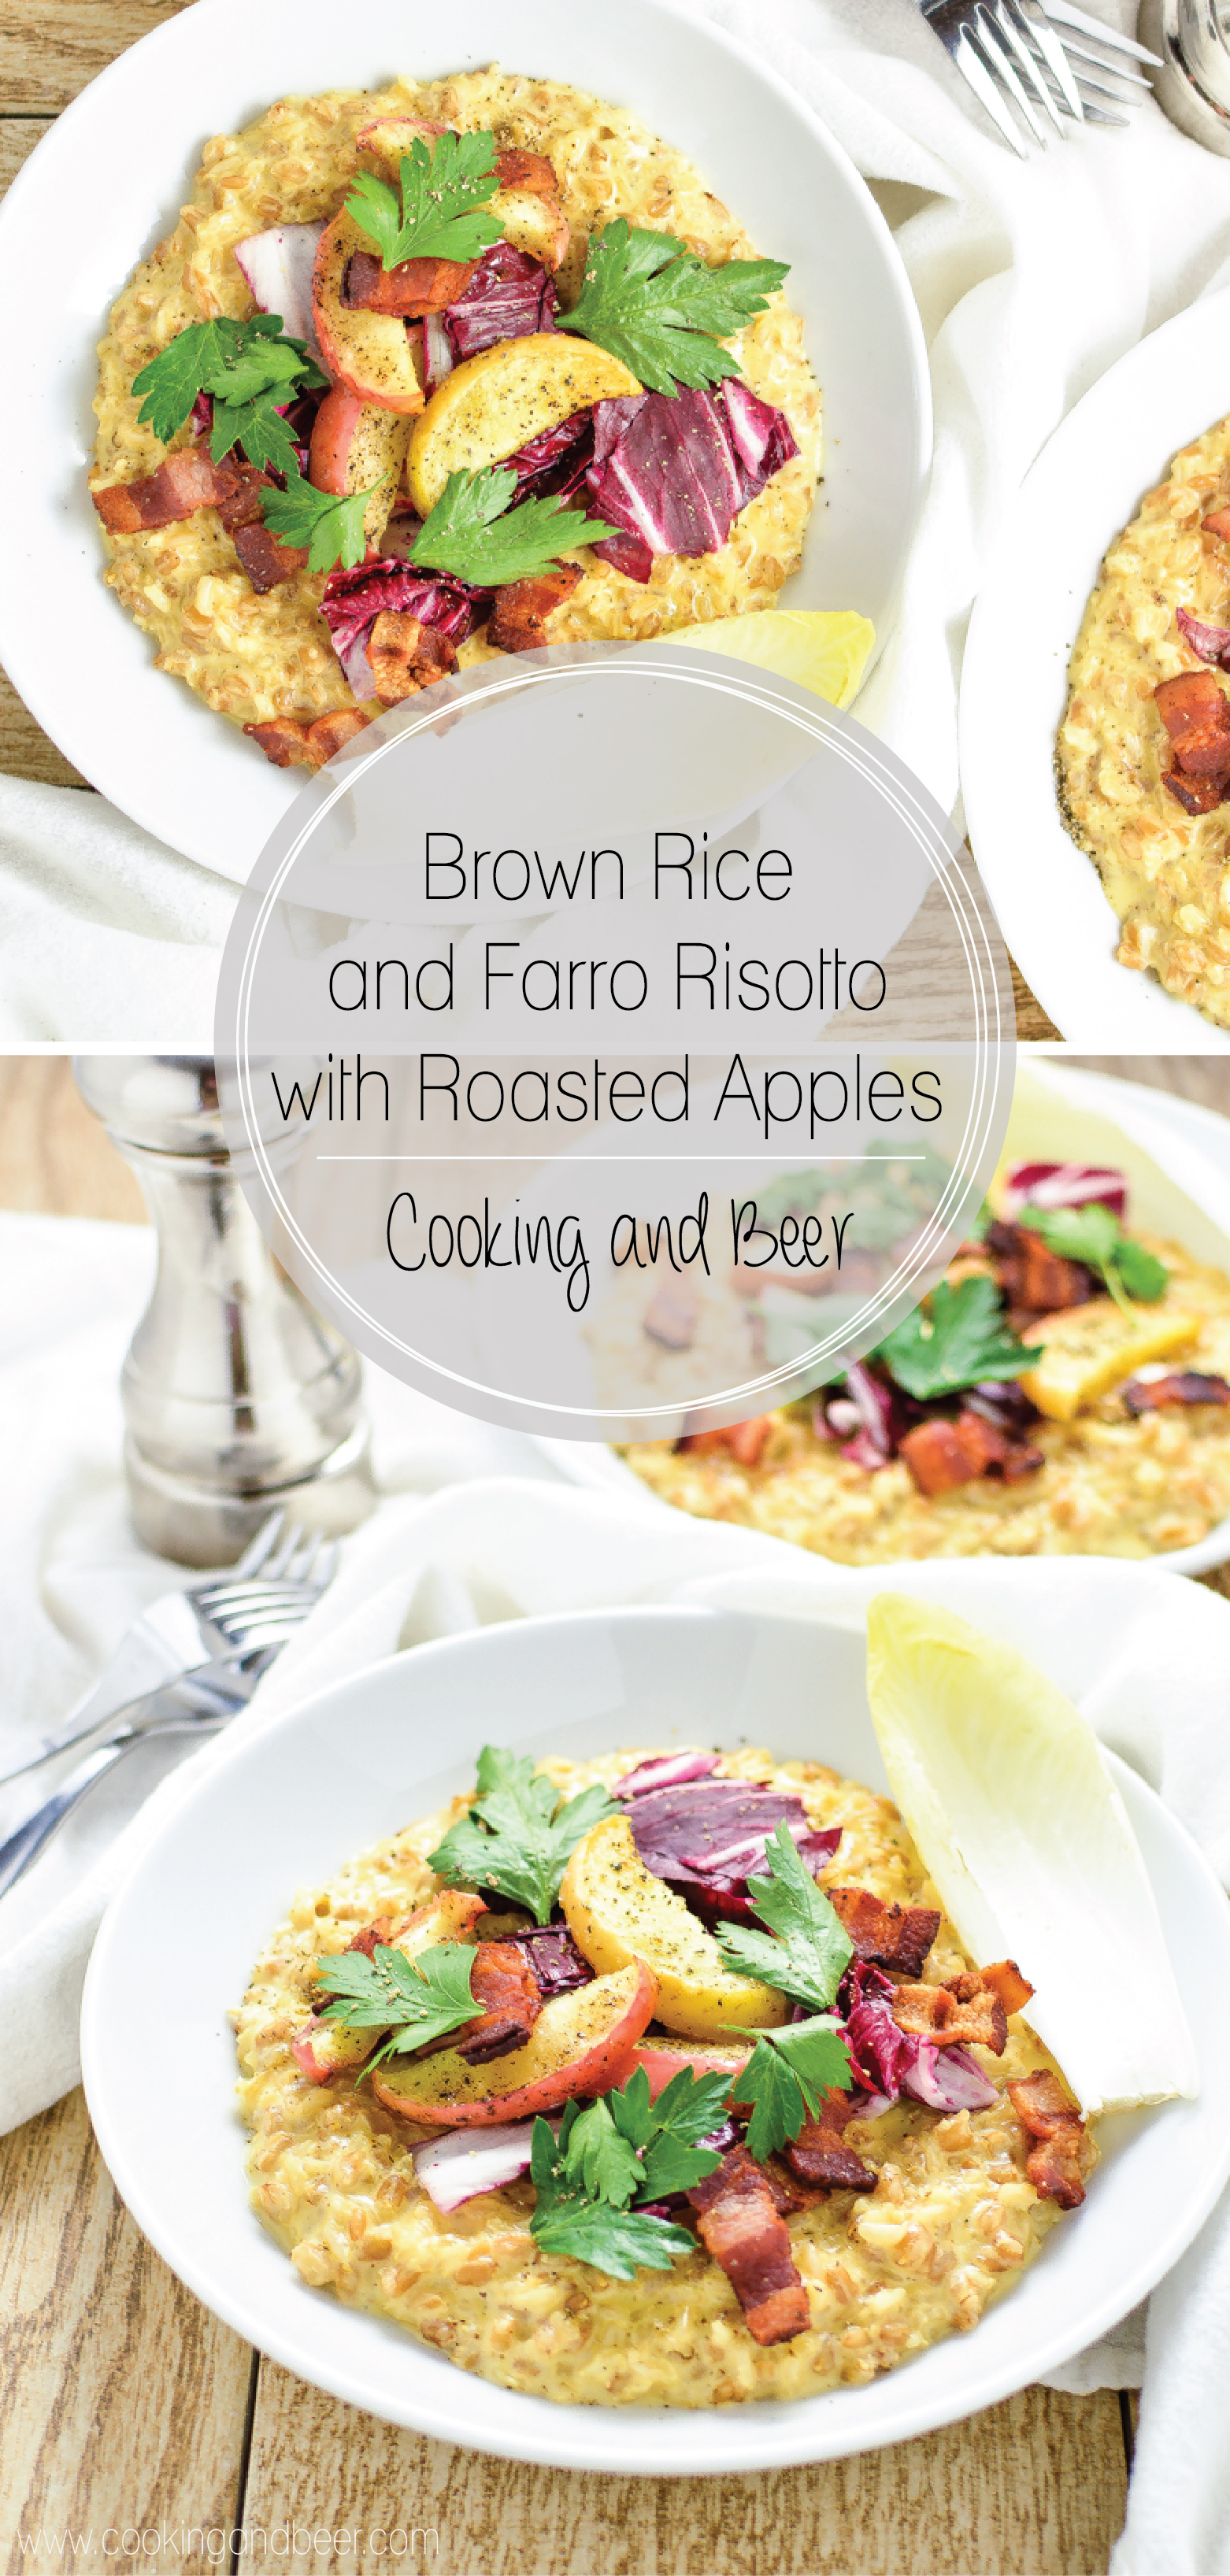 Brown Rice and Farro Risotto with Roasted Apples is a comforting dinner recipe to celebrate fall flavors!